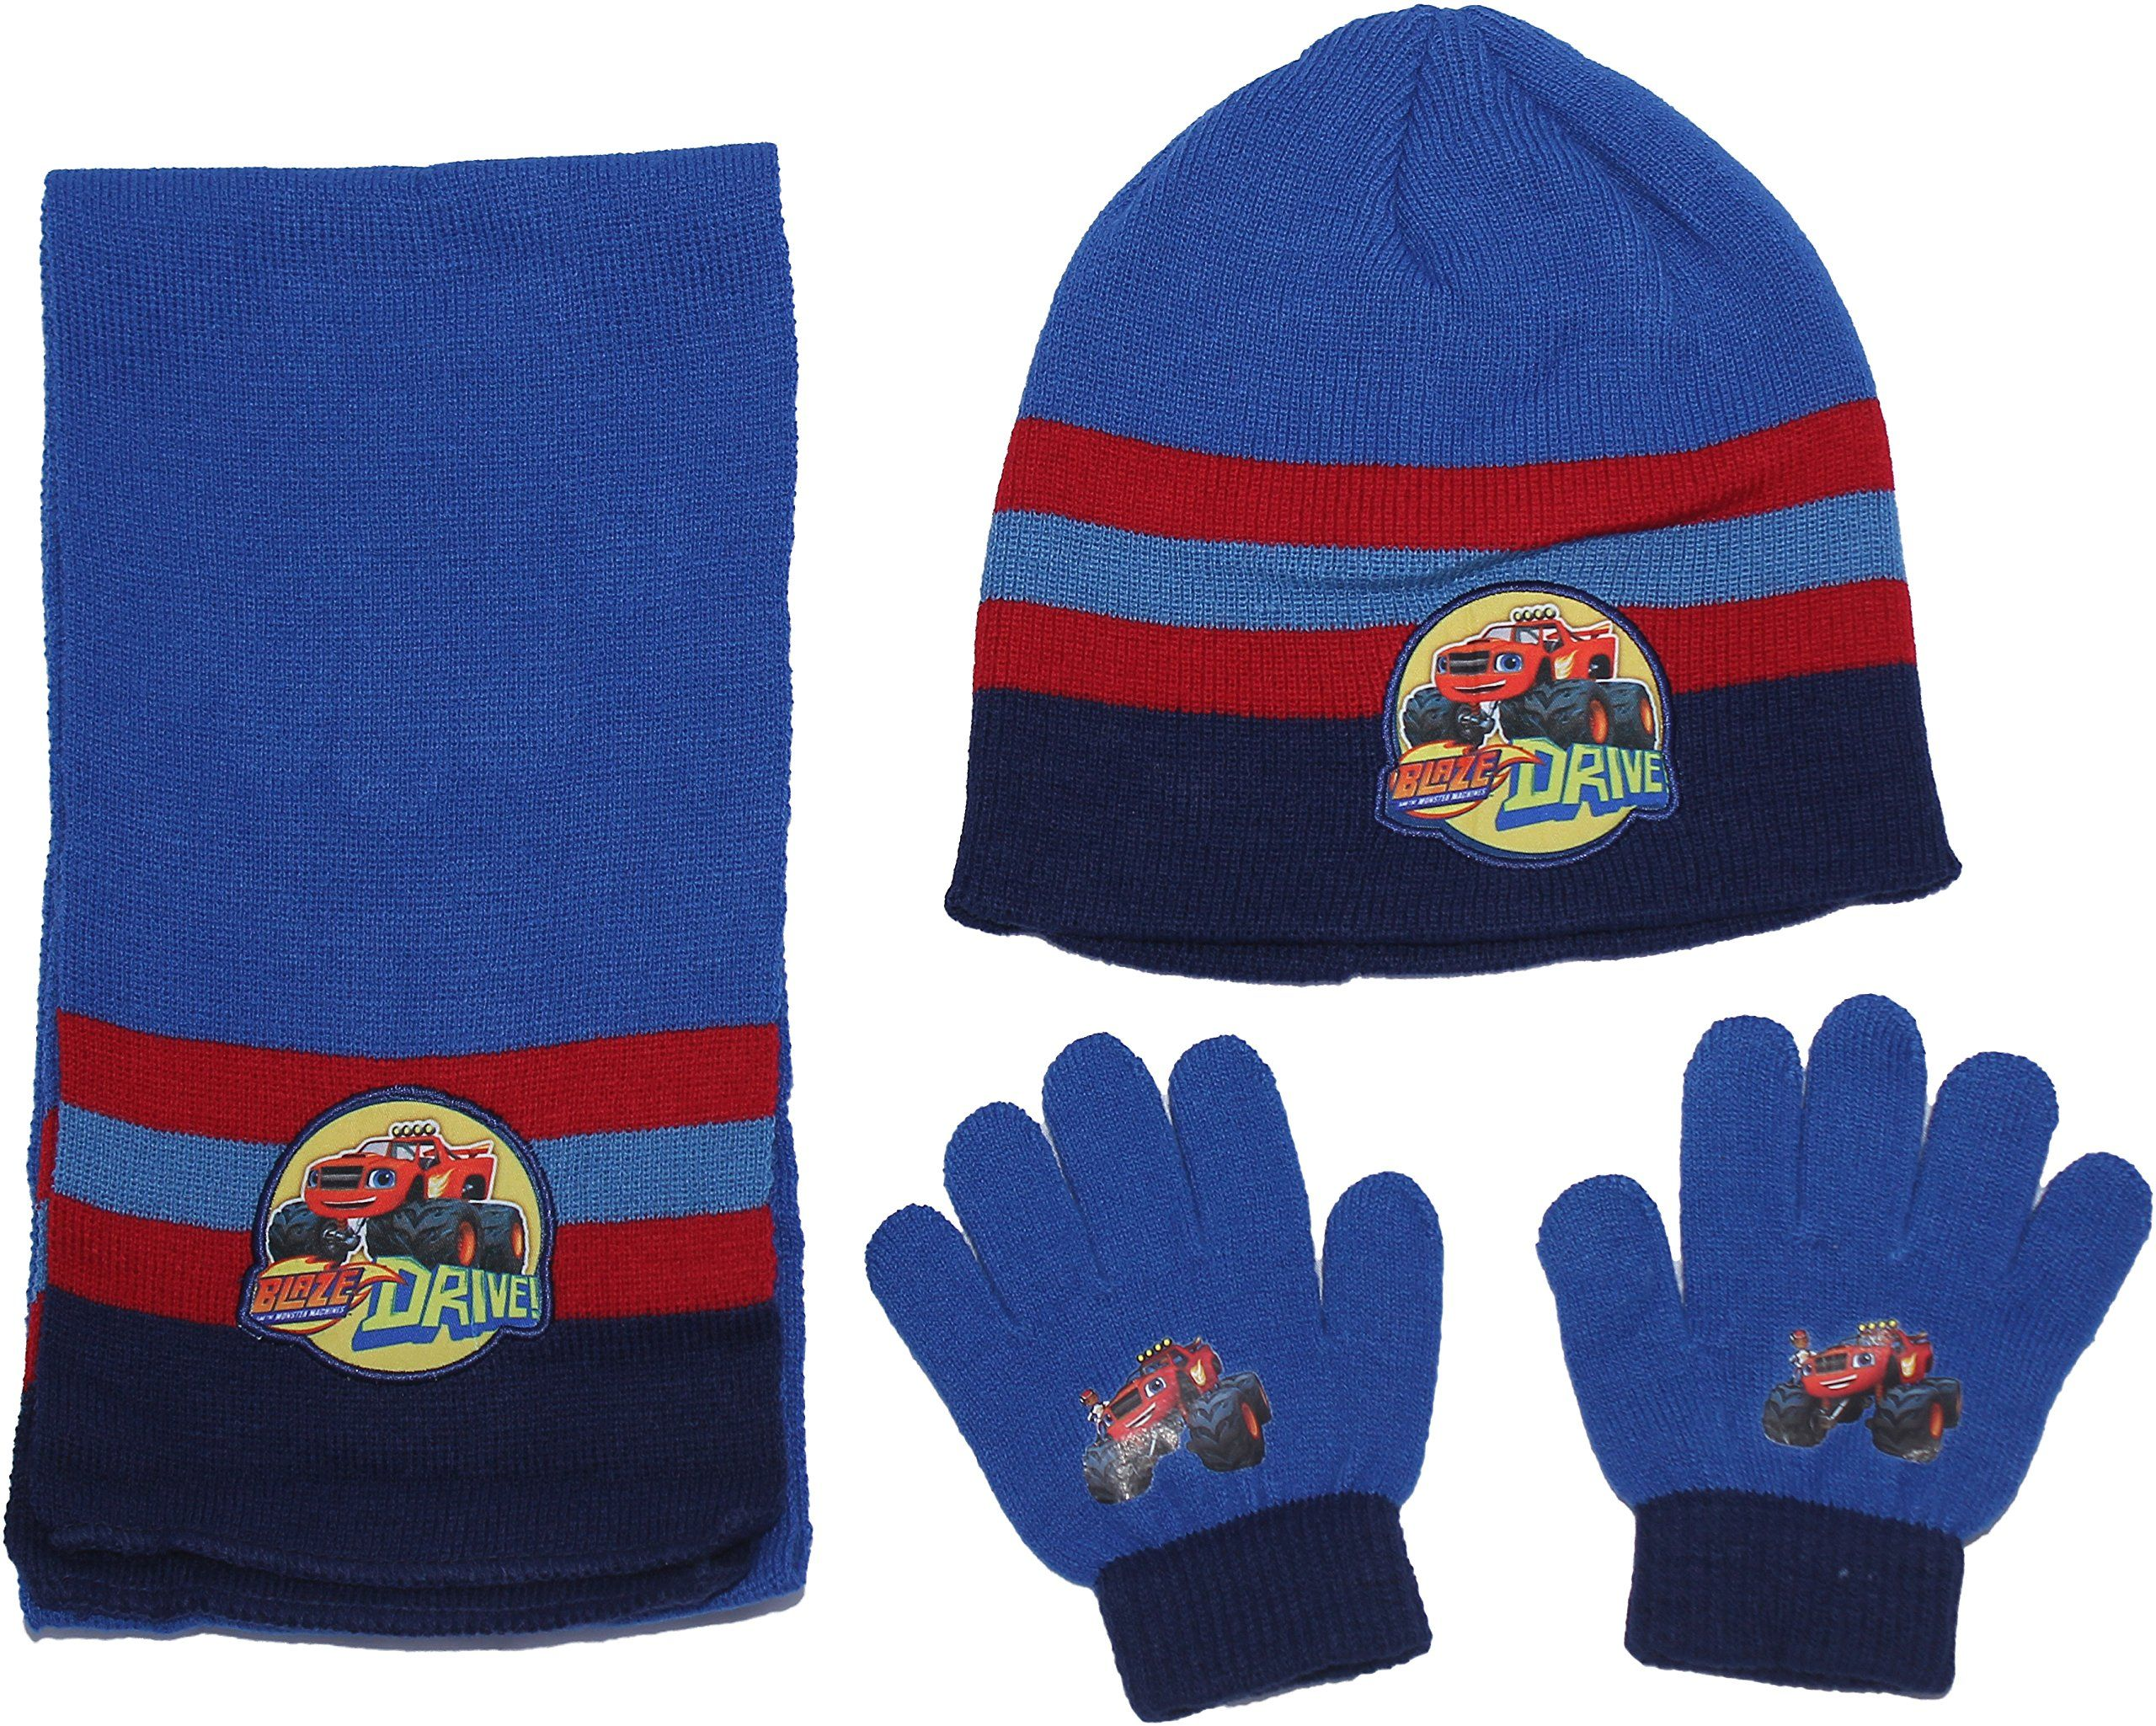 exclusive range online retailer amazing price Blaze and The Monster Machines Winter Hat Scarf and Glove Set By ...